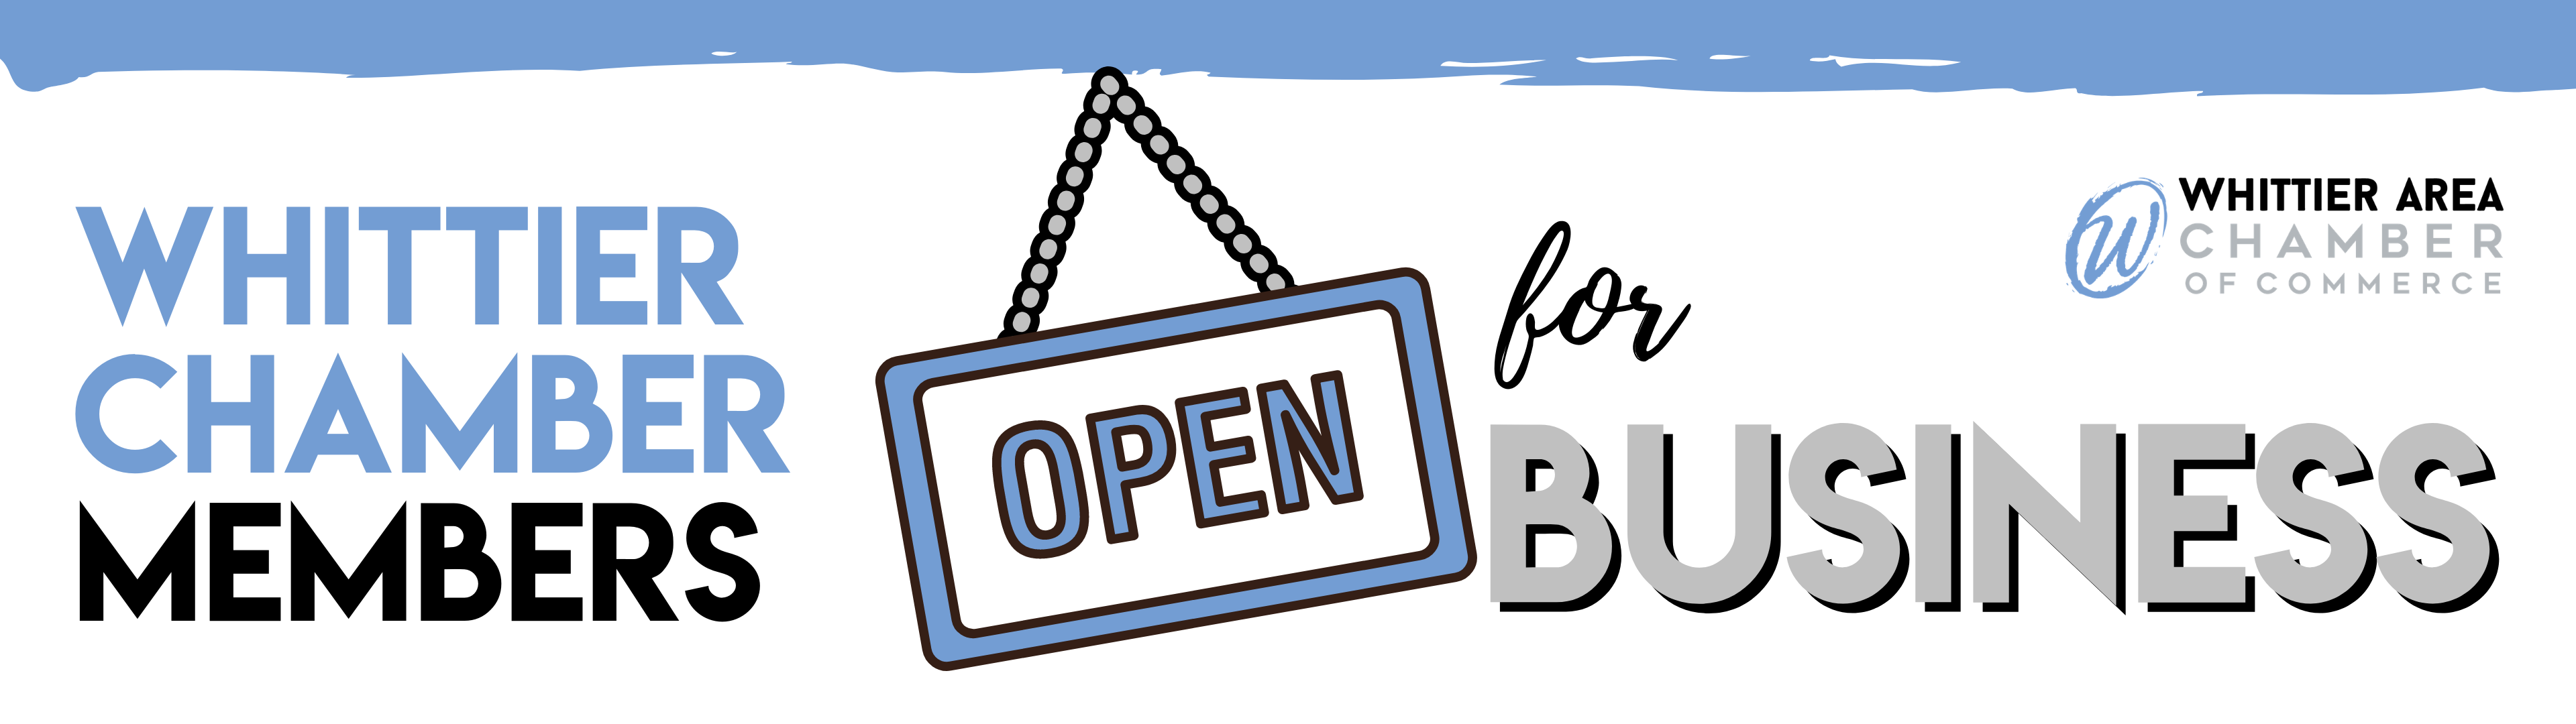 Copy of Copy of OPEN for business